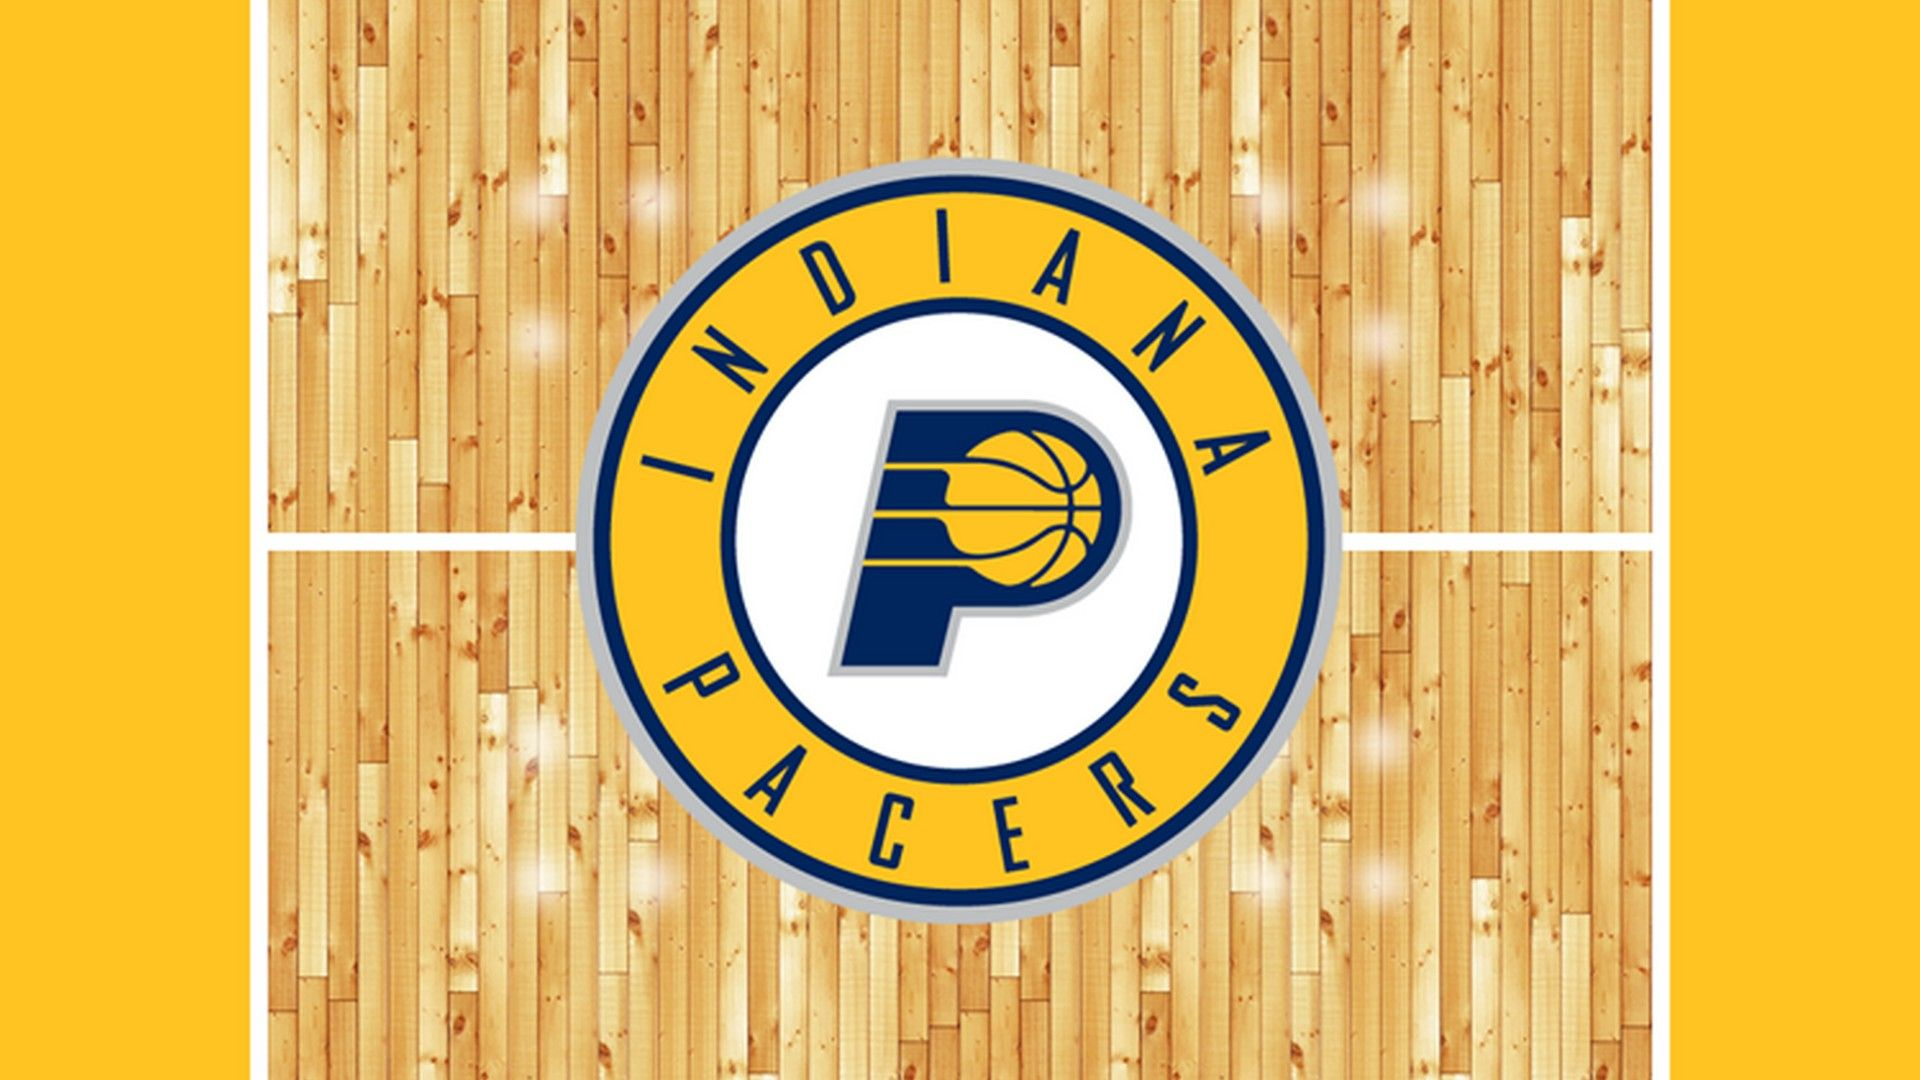 Indiana Pacers For Mac Wallpaper 2021 Basketball Wallpaper Basketball Wallpaper Basketball Wallpapers Hd Indiana Pacers